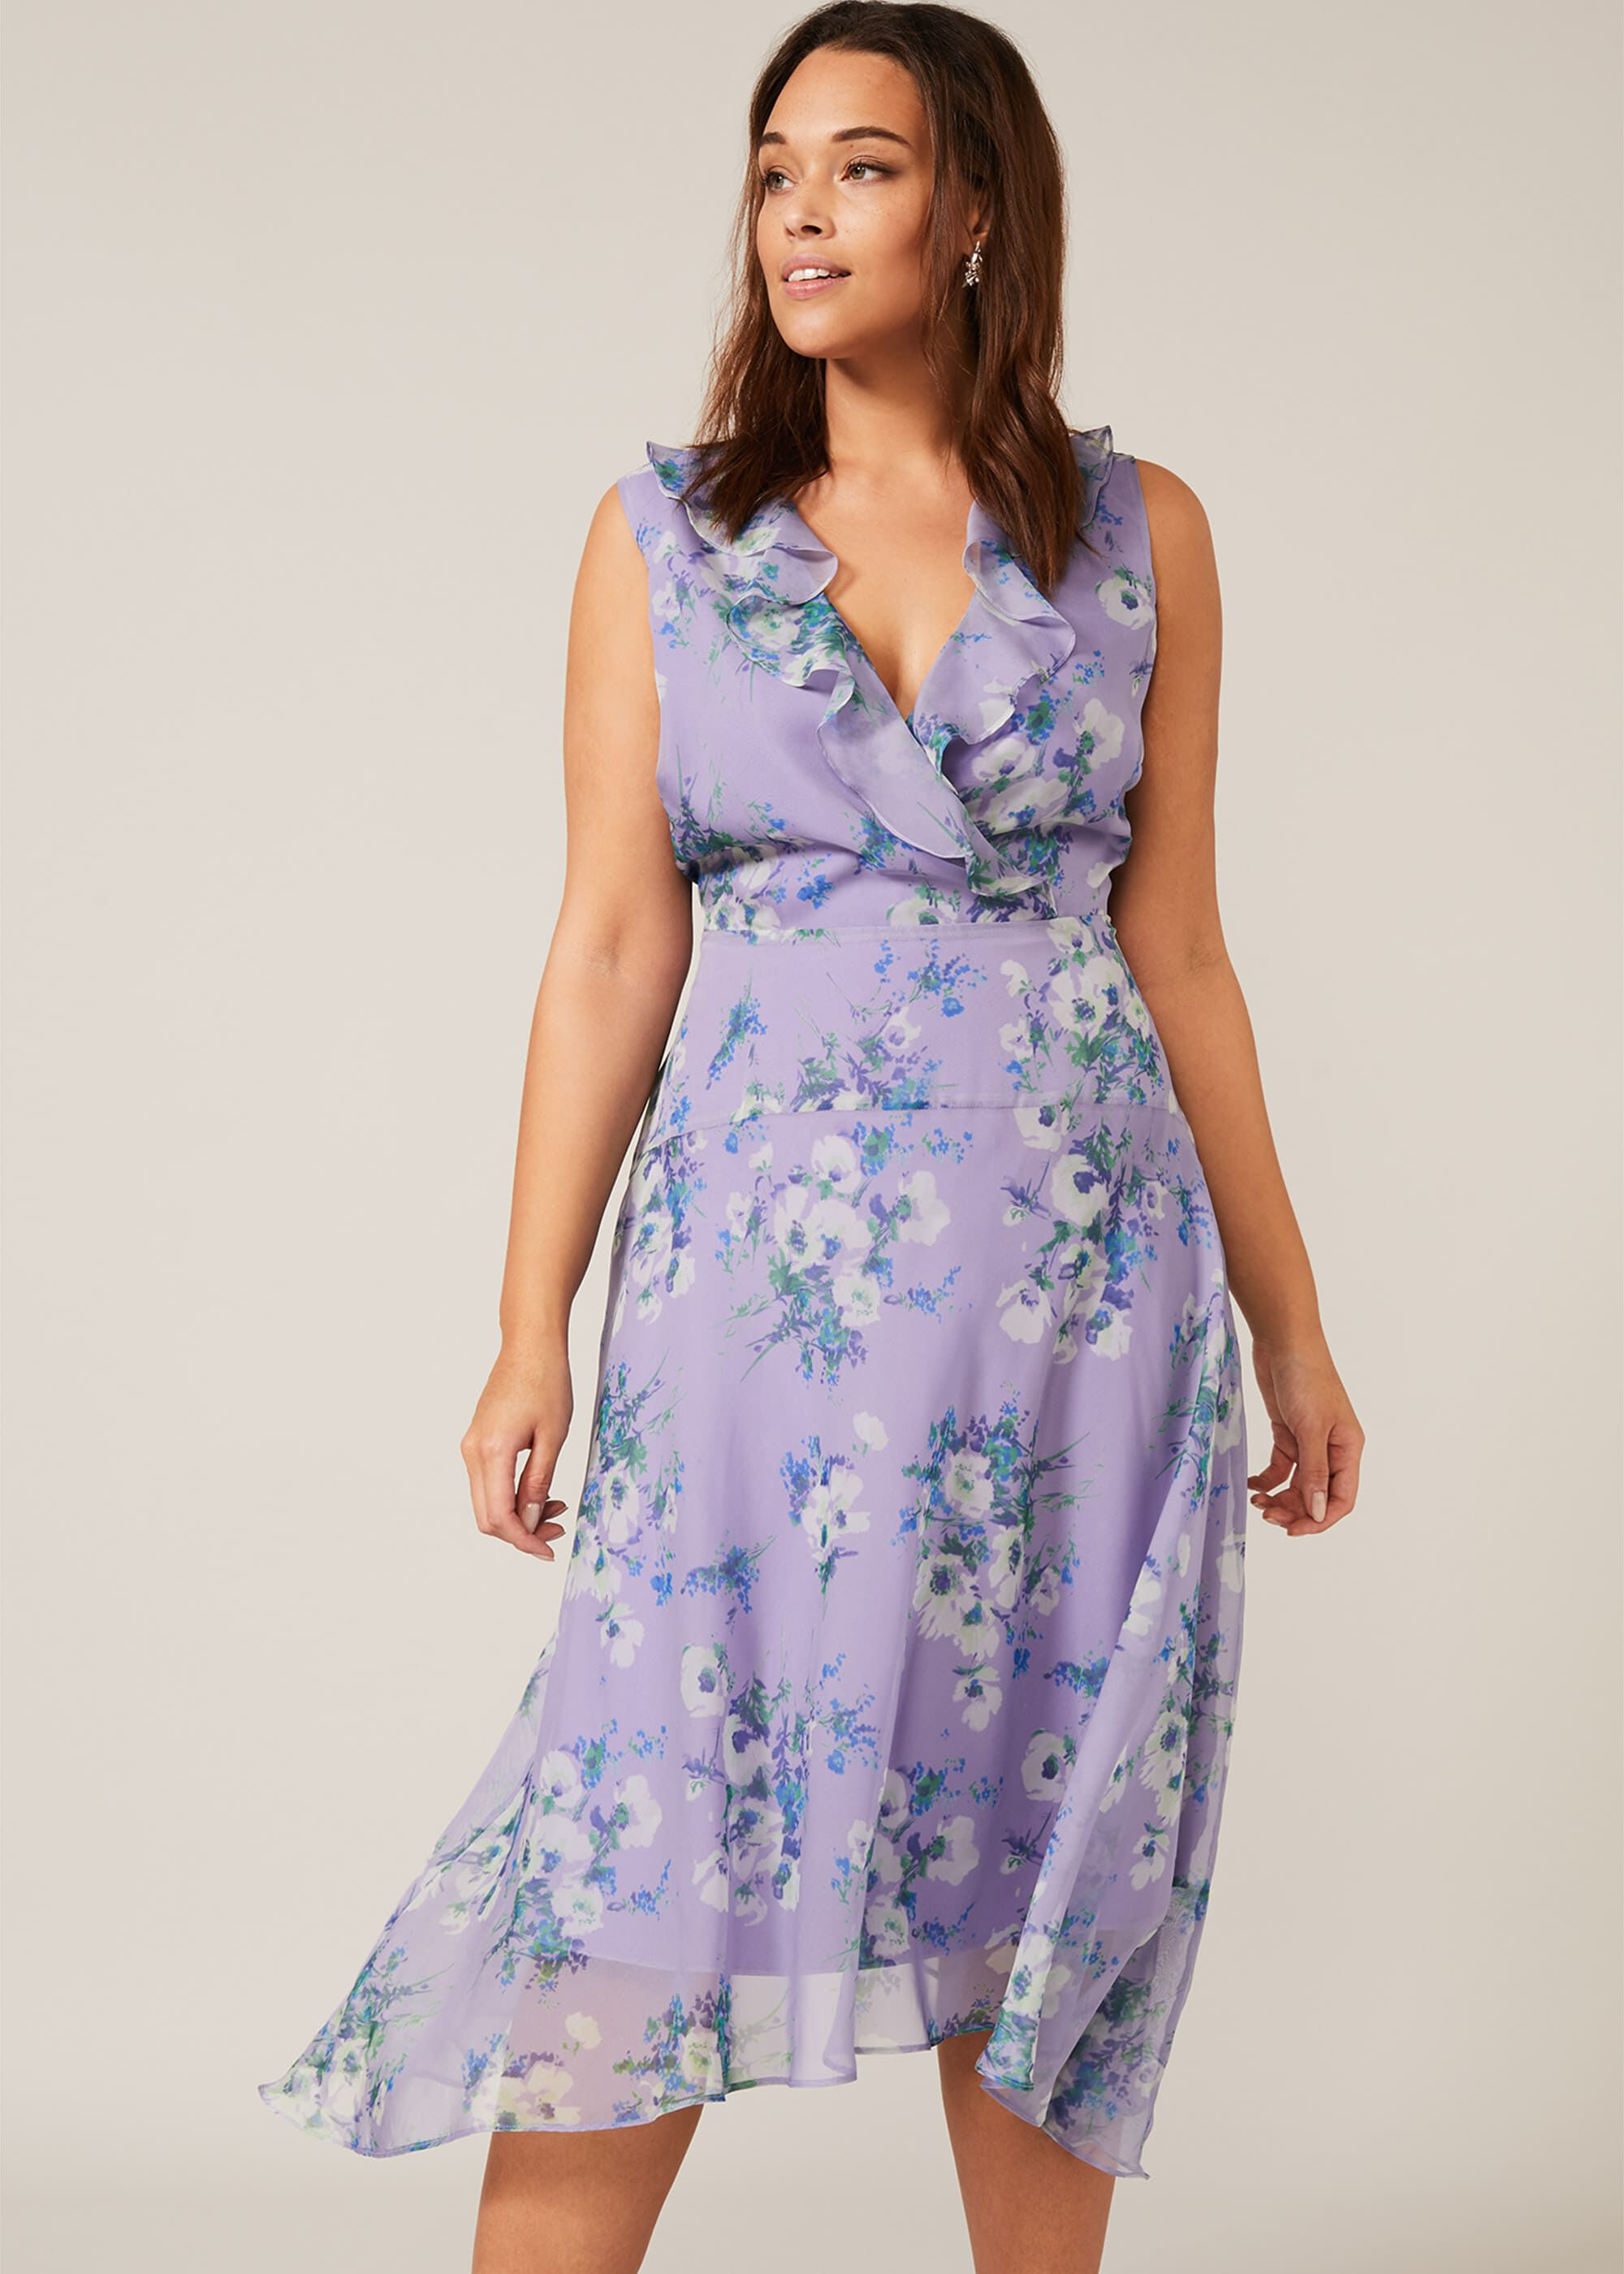 Studio 8 Anya Floral Frill Dress, Purple, Fit & Flare, Occasion Dress